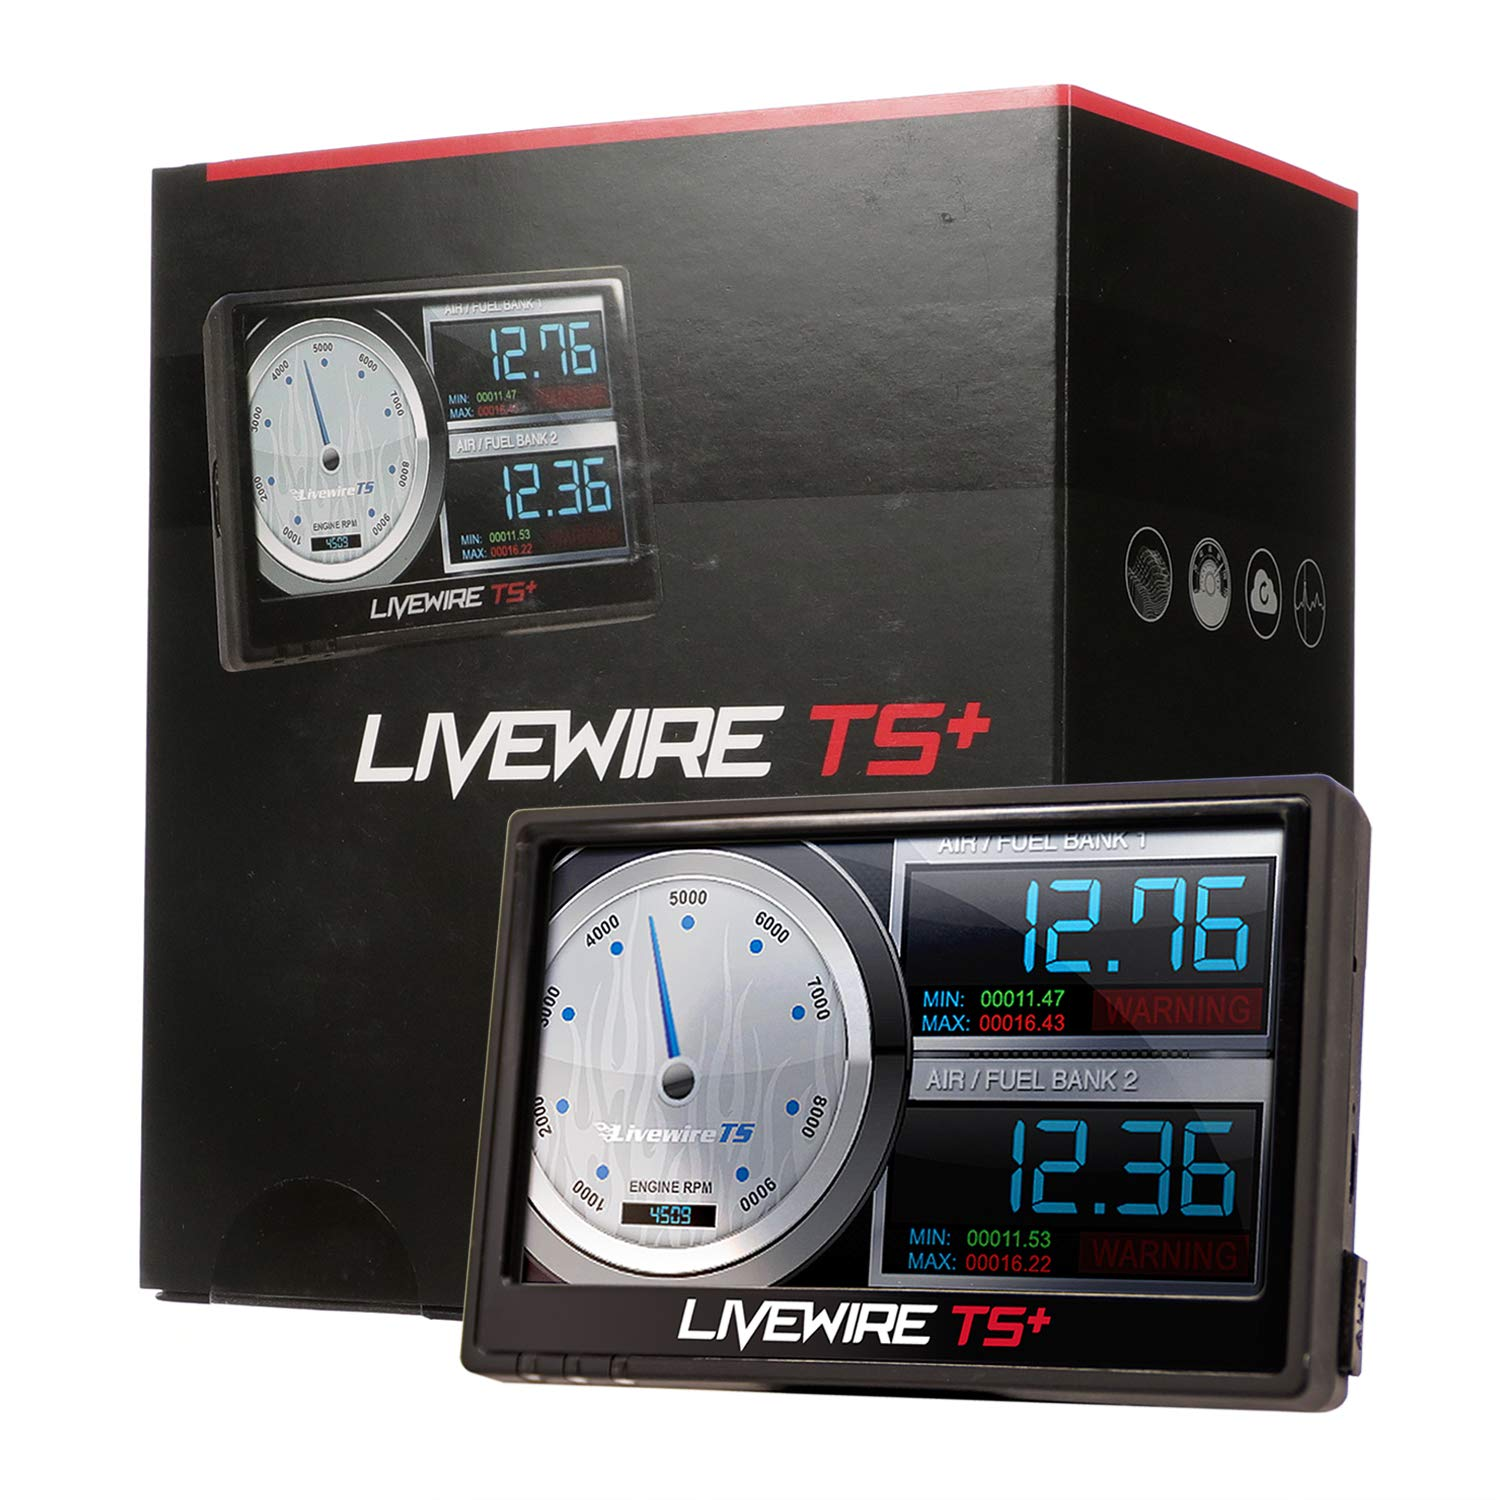 4. SCT Performance - 5015P - Livewire TS+ Performance Tuner and Monitor for 3.5 Ecoboost